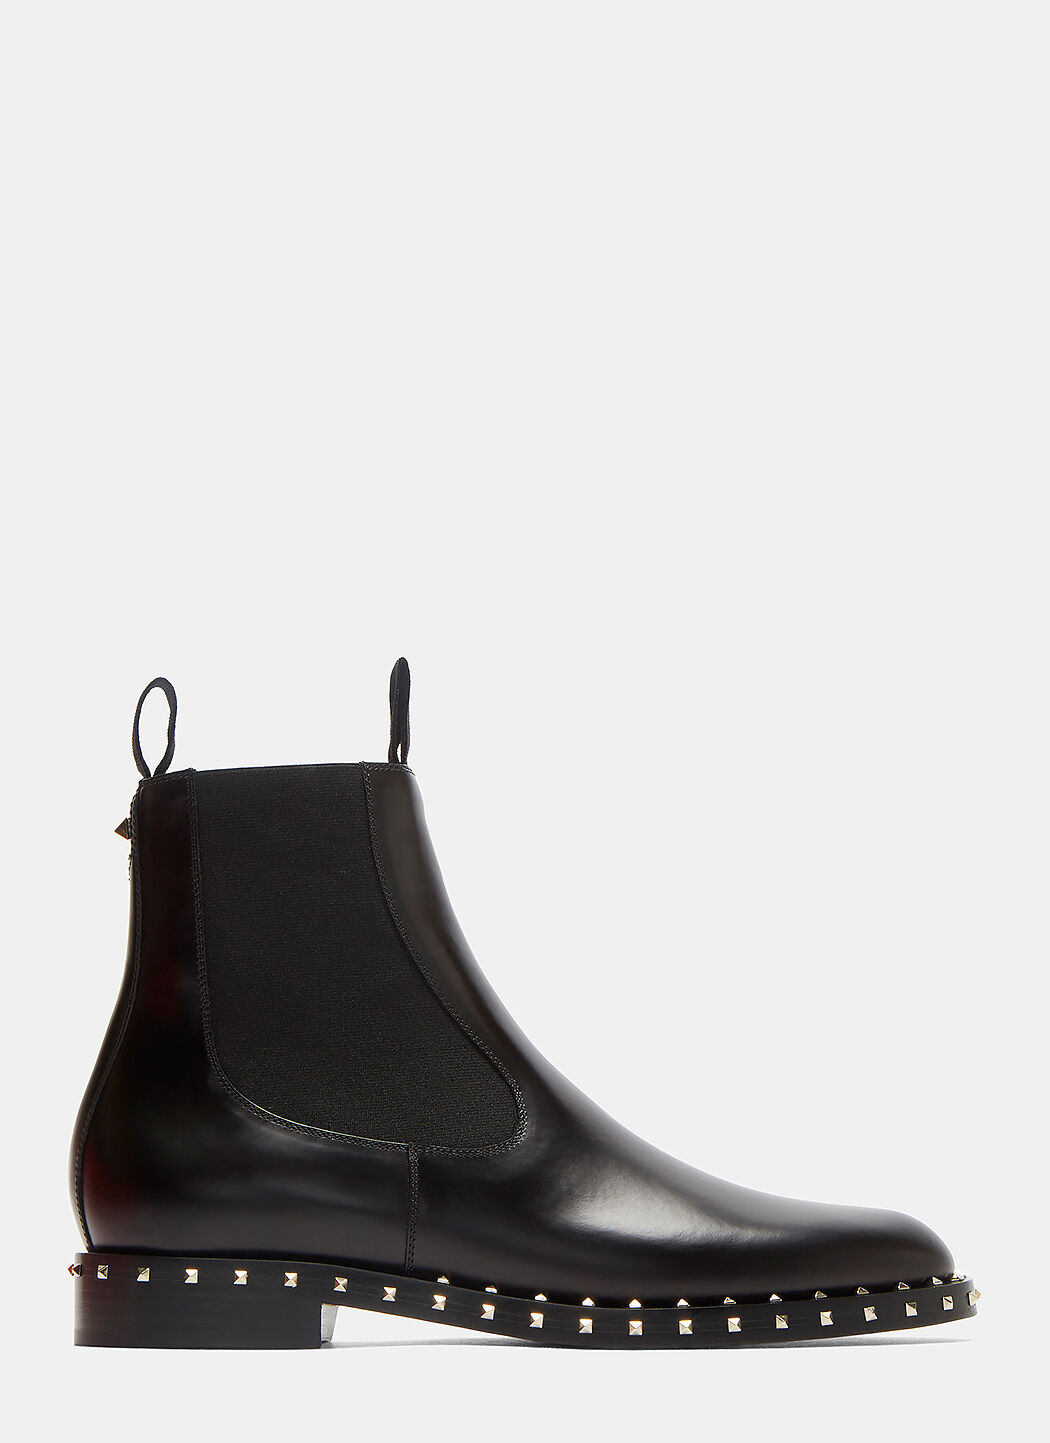 Valentino Leathers Pyramid-Studded Chelsea Boots in Black